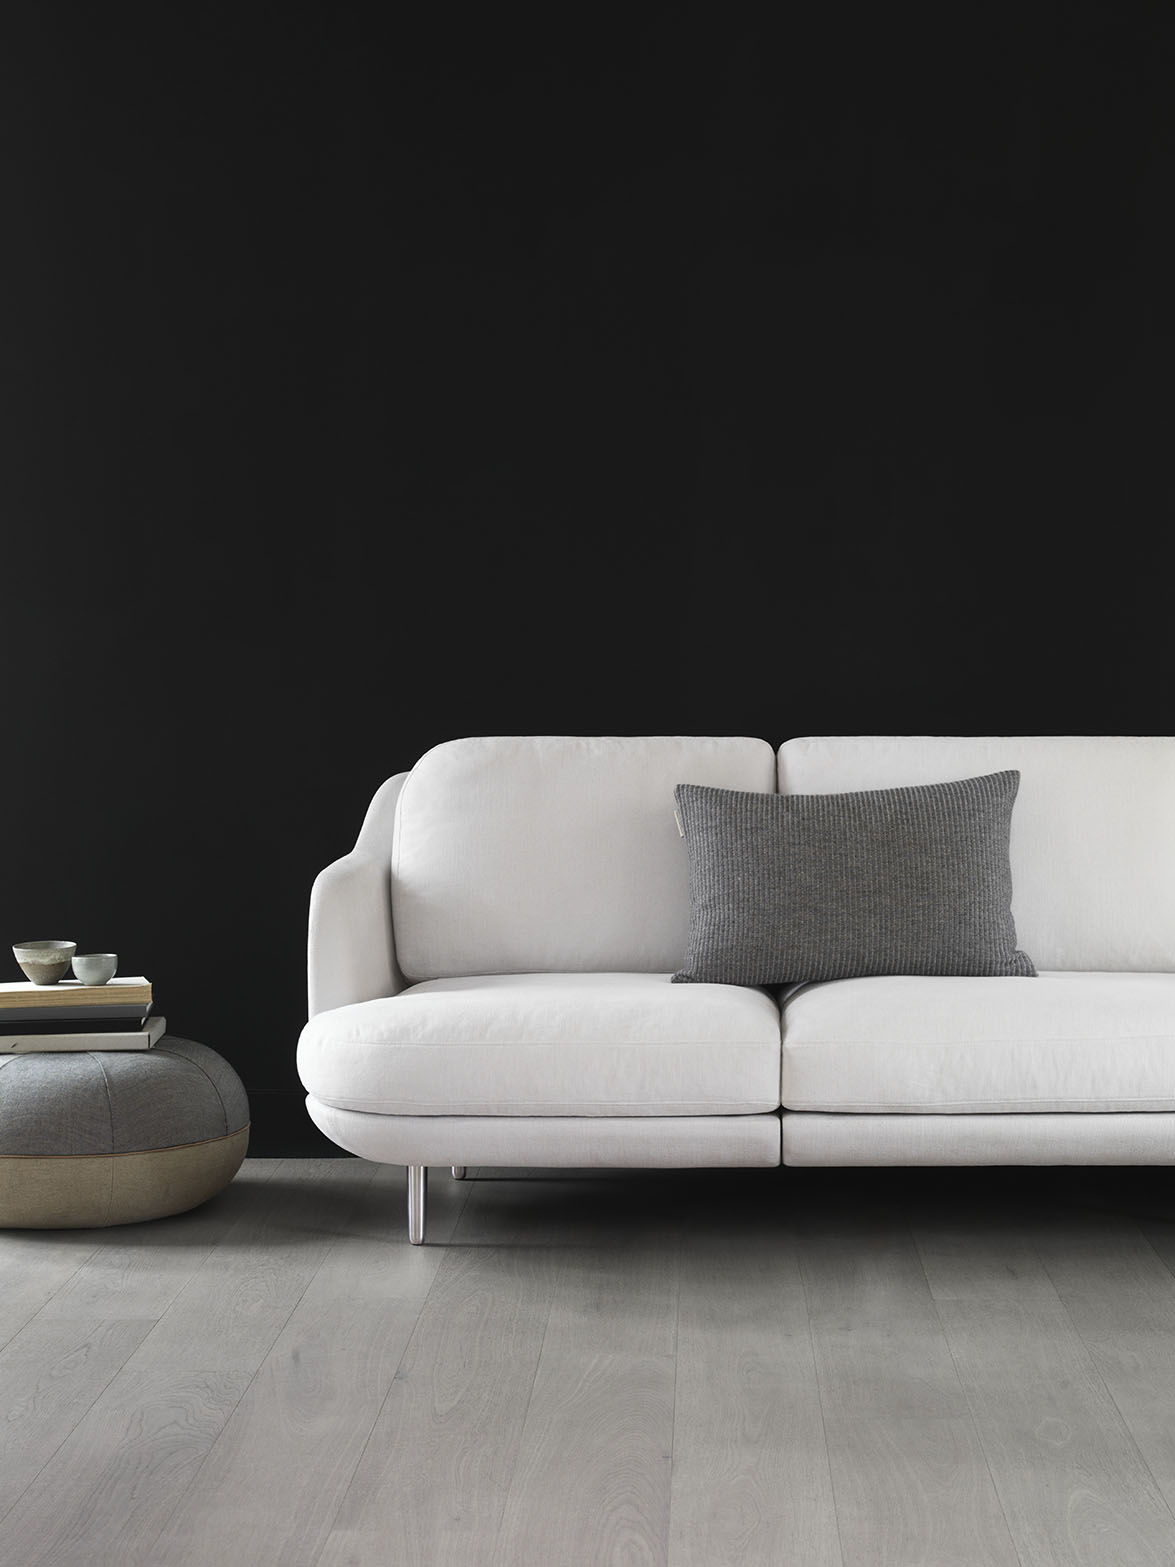 Confort Sofas Fritz Hansen™ And Jaime Hayon Presents Lune, A New